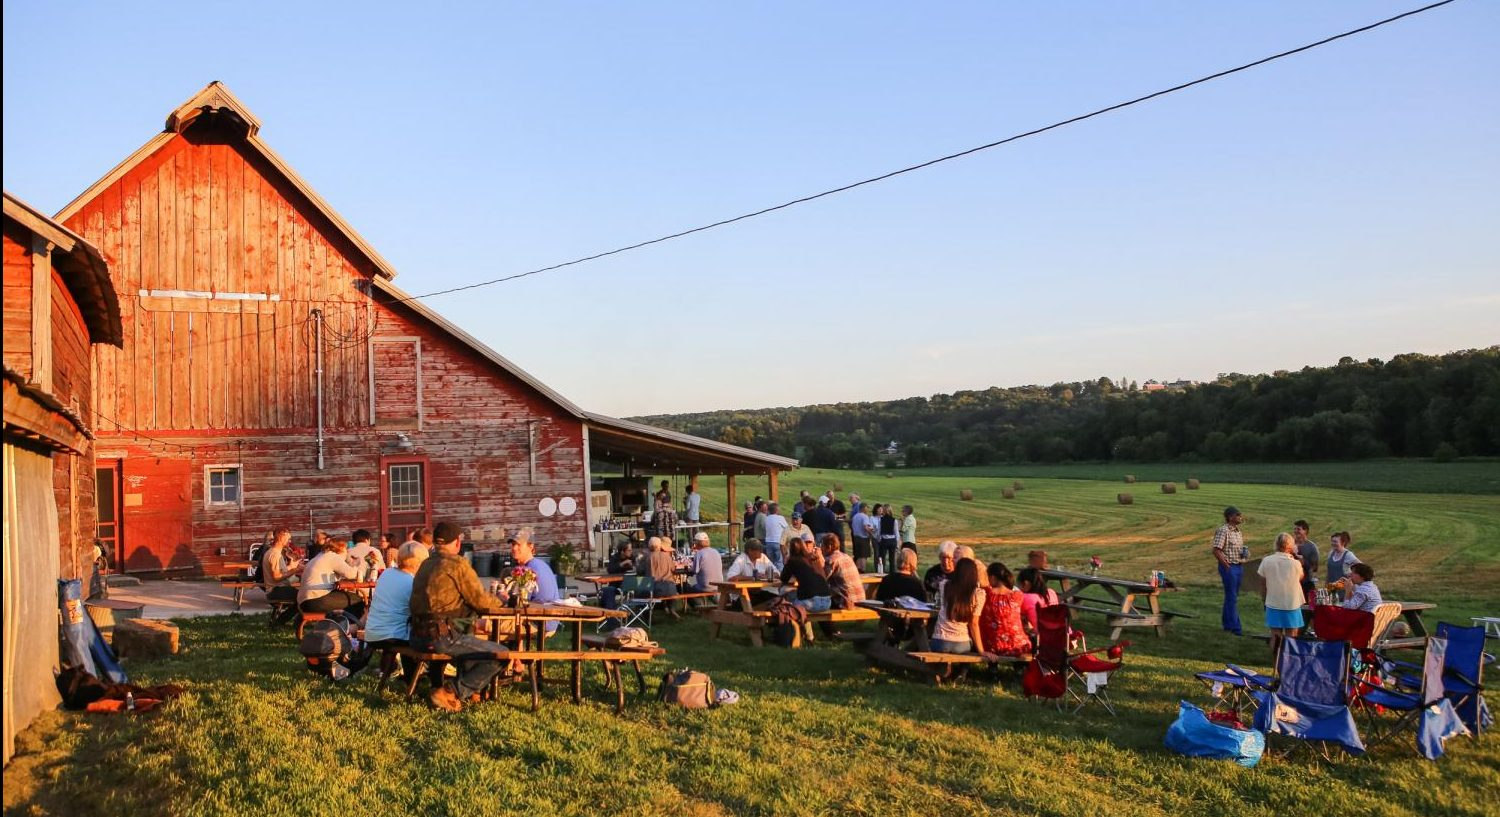 Luna Valley Farm hosts its weekly pizza night during a beautiful sunset.